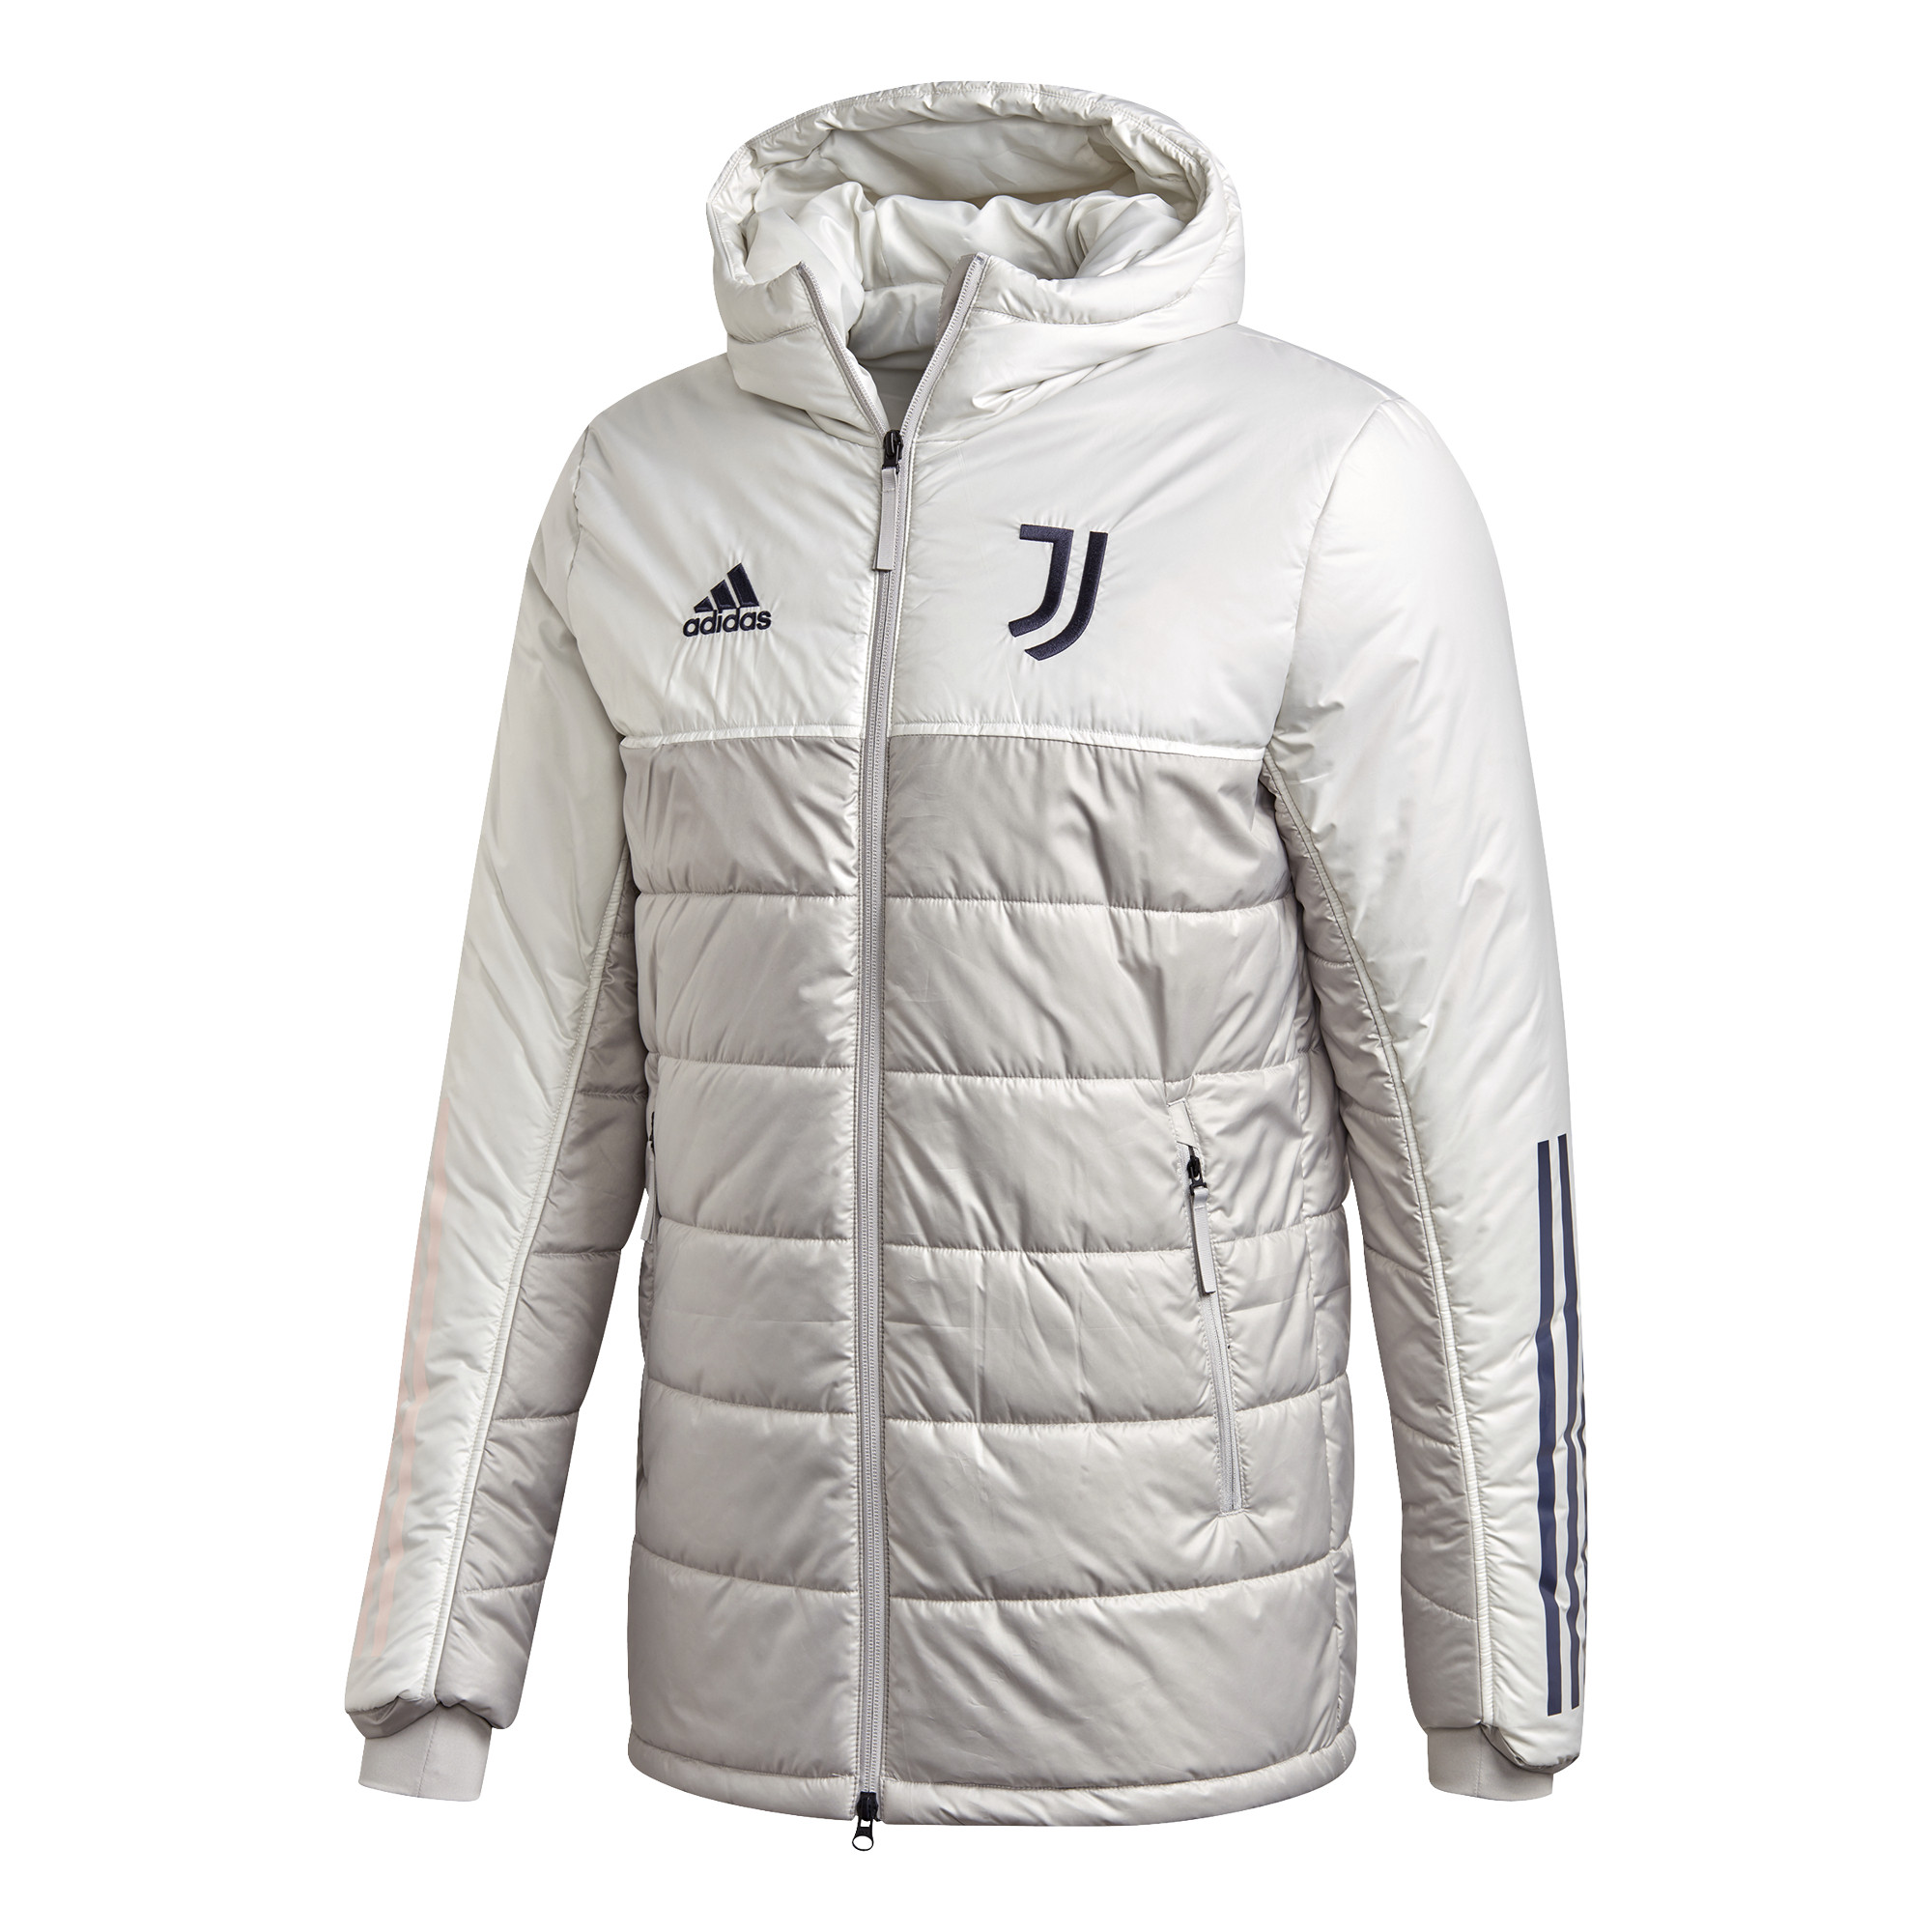 The Best Juventus Fc Jacket